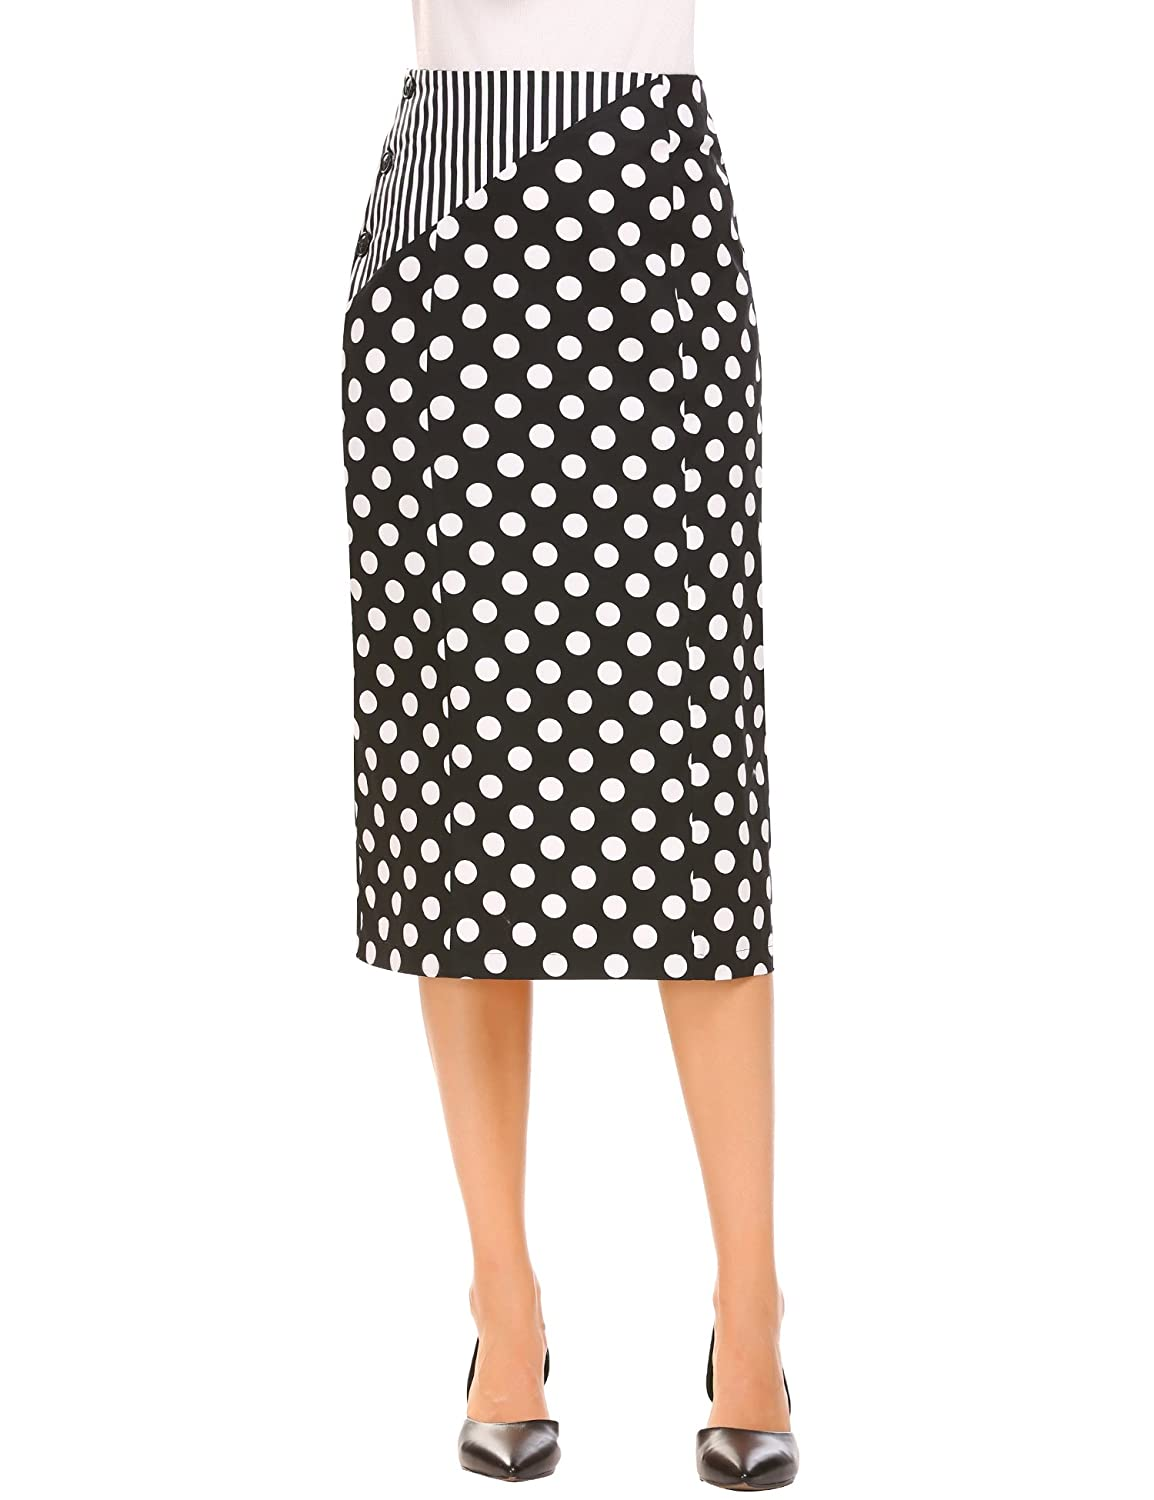 86876df0660d ❣High Quality Lightweight Fabric: This Pencil Skirt is made from 97%  Cotton, 3% Spandex ❣High Waist Pencil Skirt, Slim Fit, Patchwork, Side  Button closure